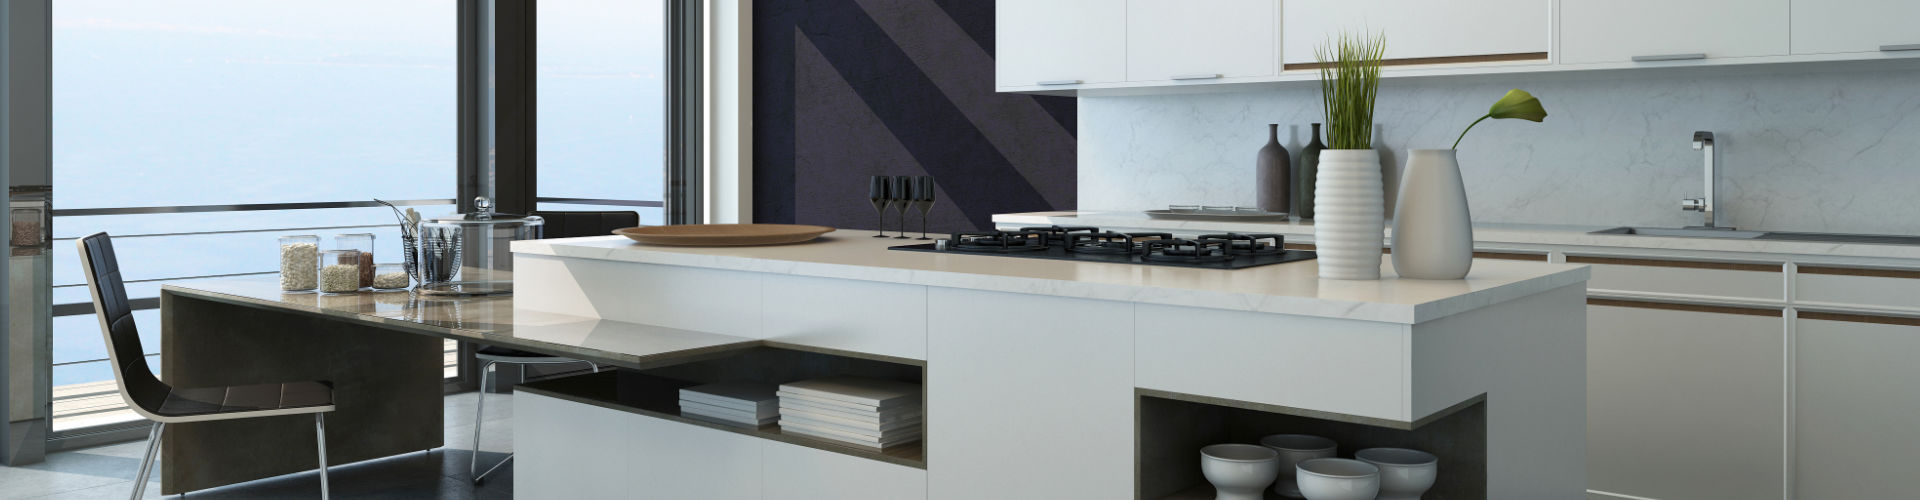 Quartz Kitchen Countertop and Island